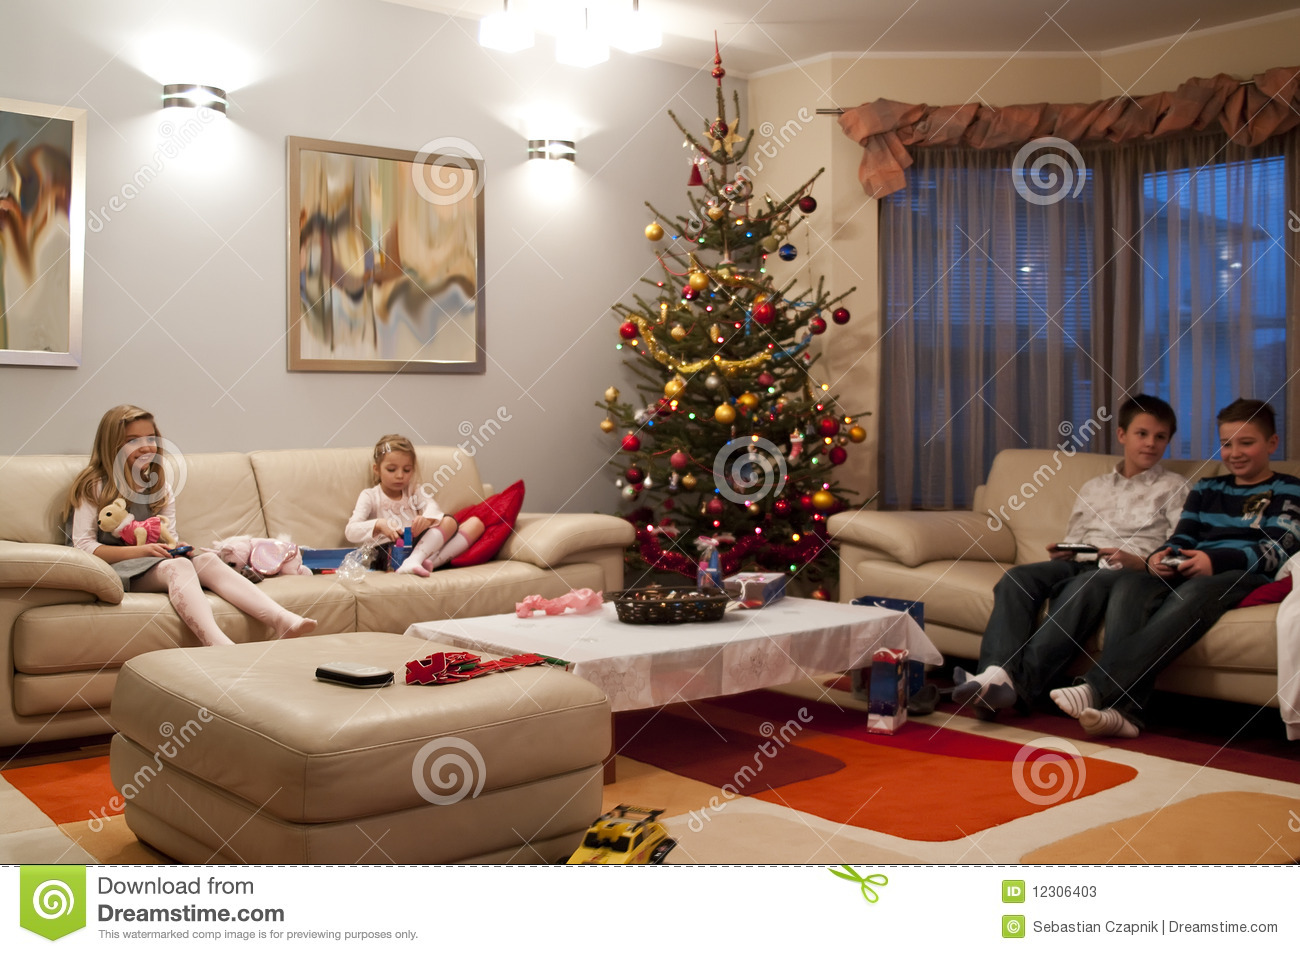 four children boys and girls sitting in the living room watching